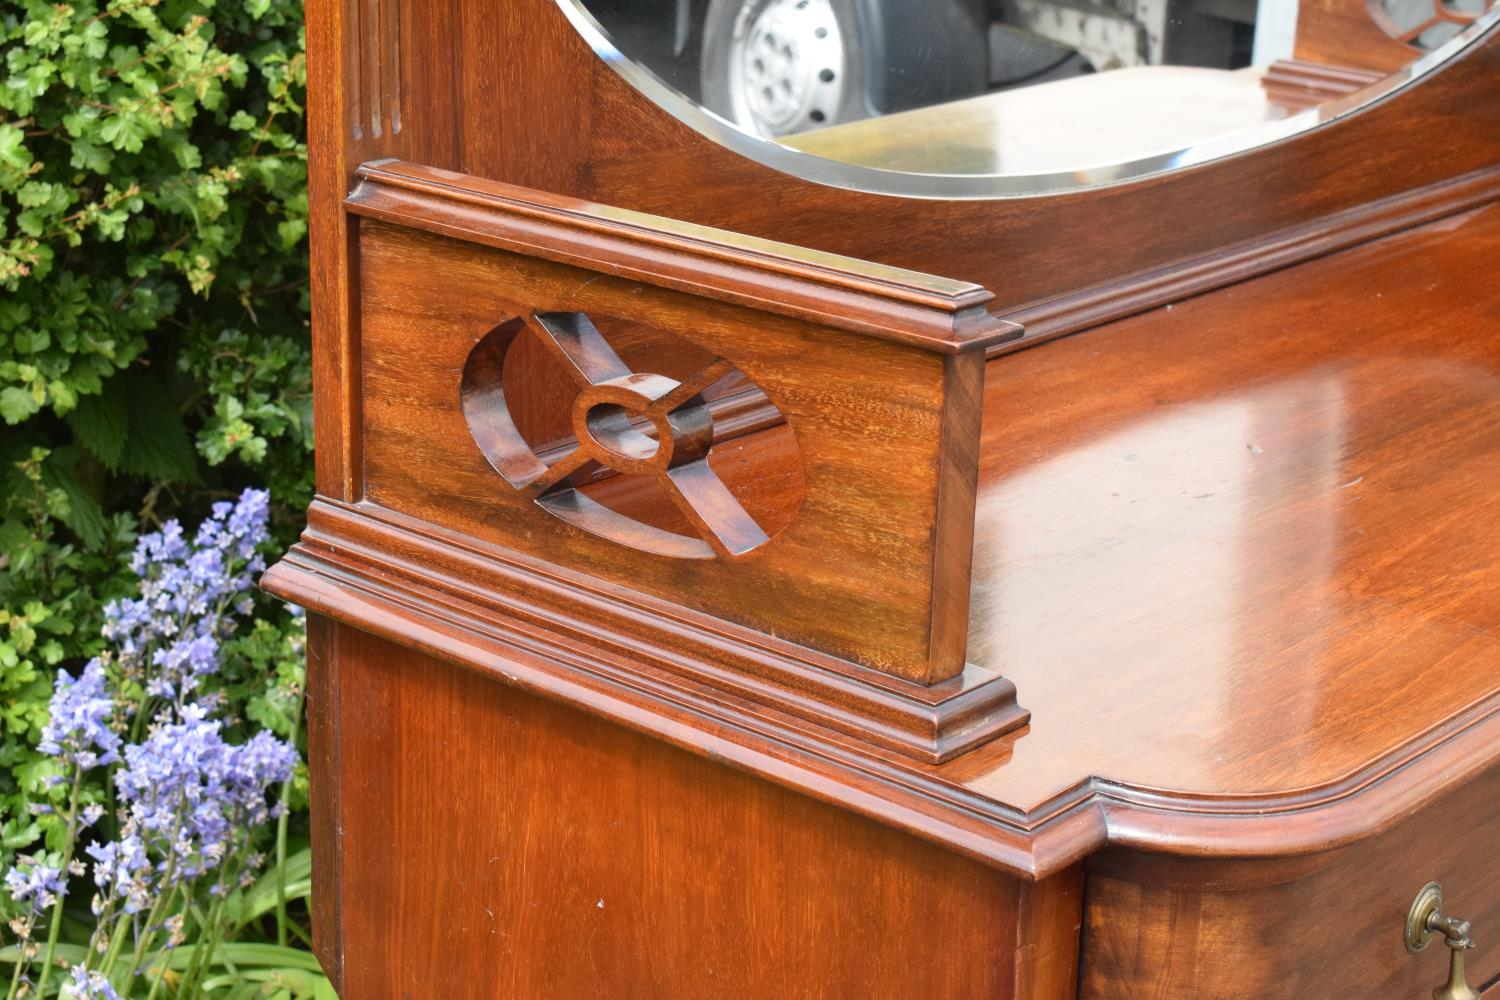 Edwardian mirror backed sideboard/ drinks cabinet. 168 x 56 x 183cm. The top section lifts off and - Image 5 of 11